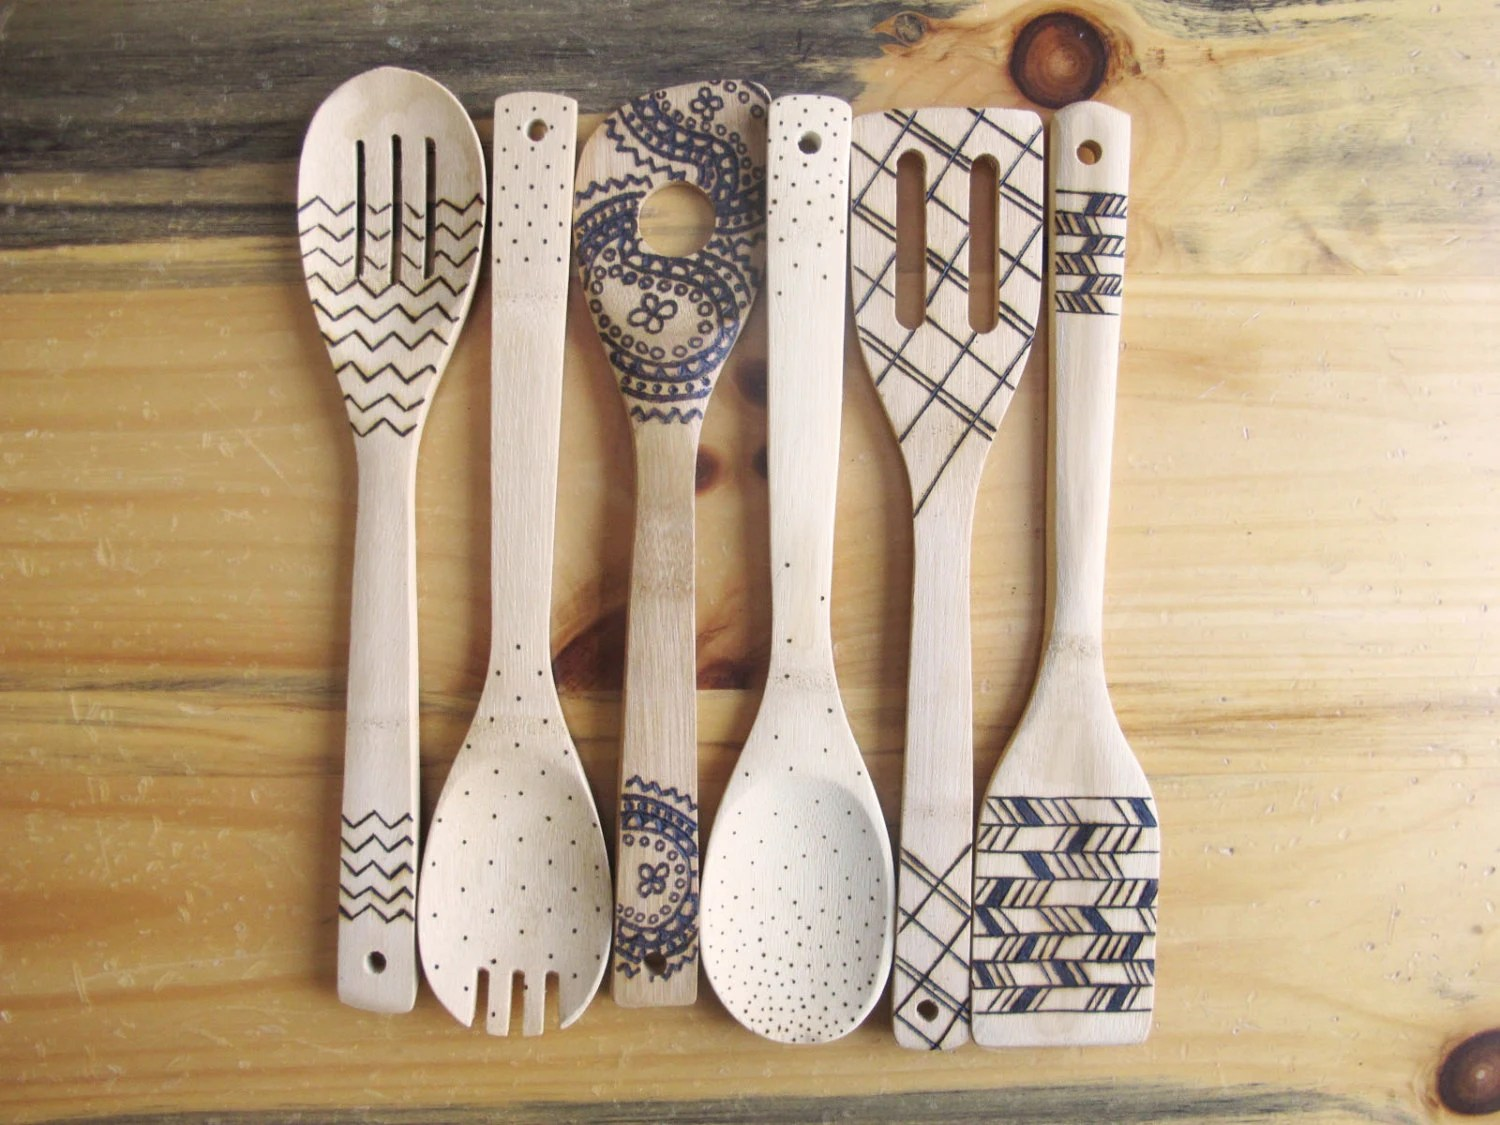 Wood Burned Kitchen Utensils Bamboo Wooden Spoons By